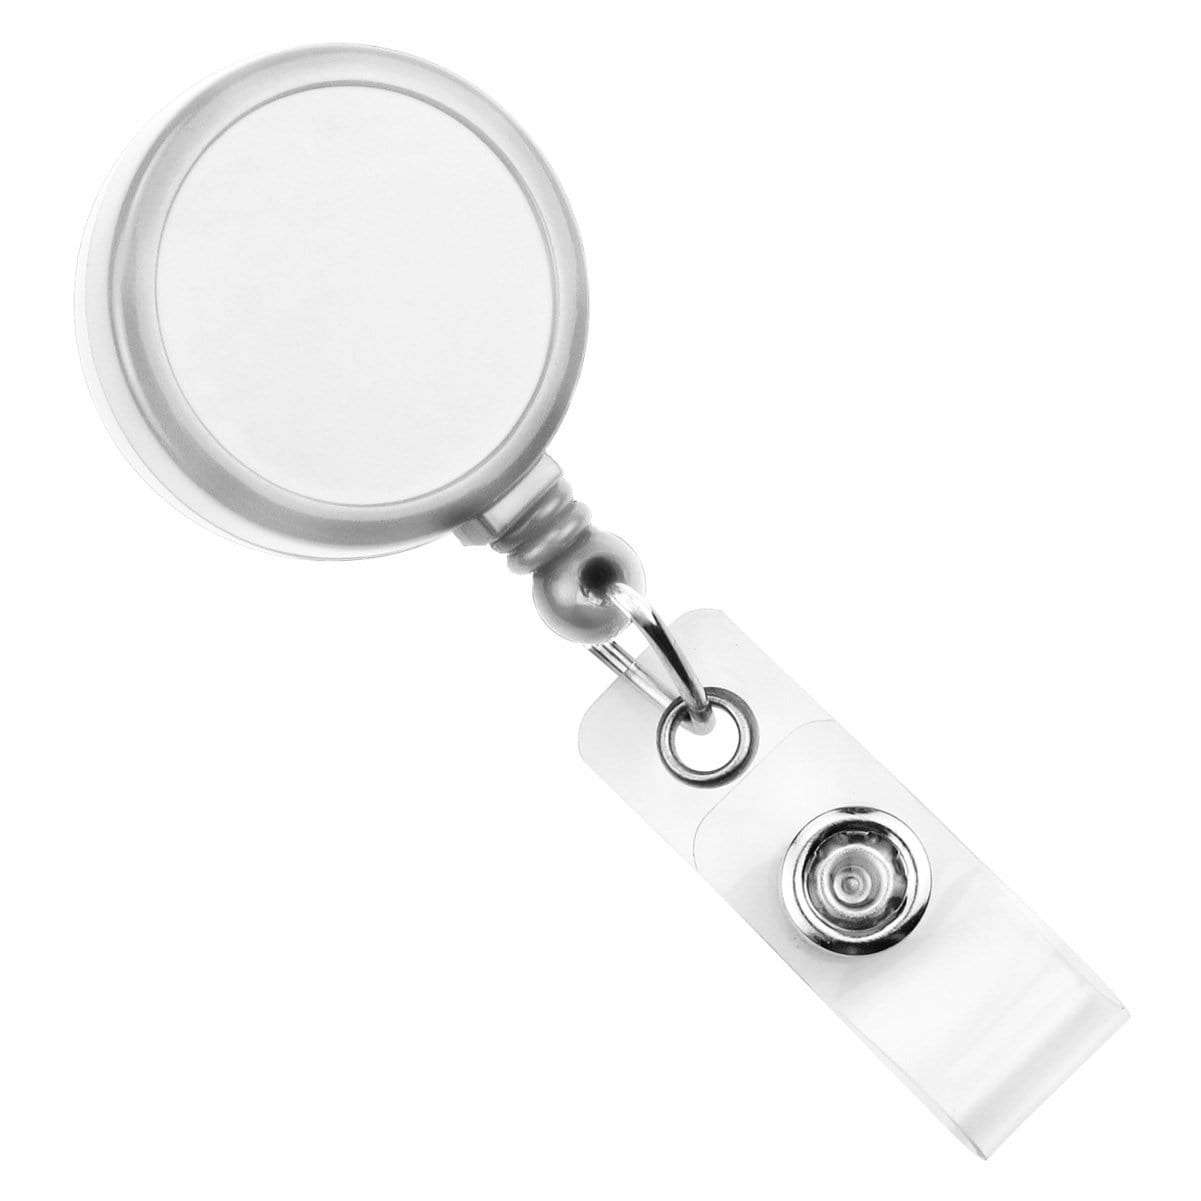 Max Label Badge Reel with 1 Inch Smooth Face and Swivel Spring Clip (909-I)